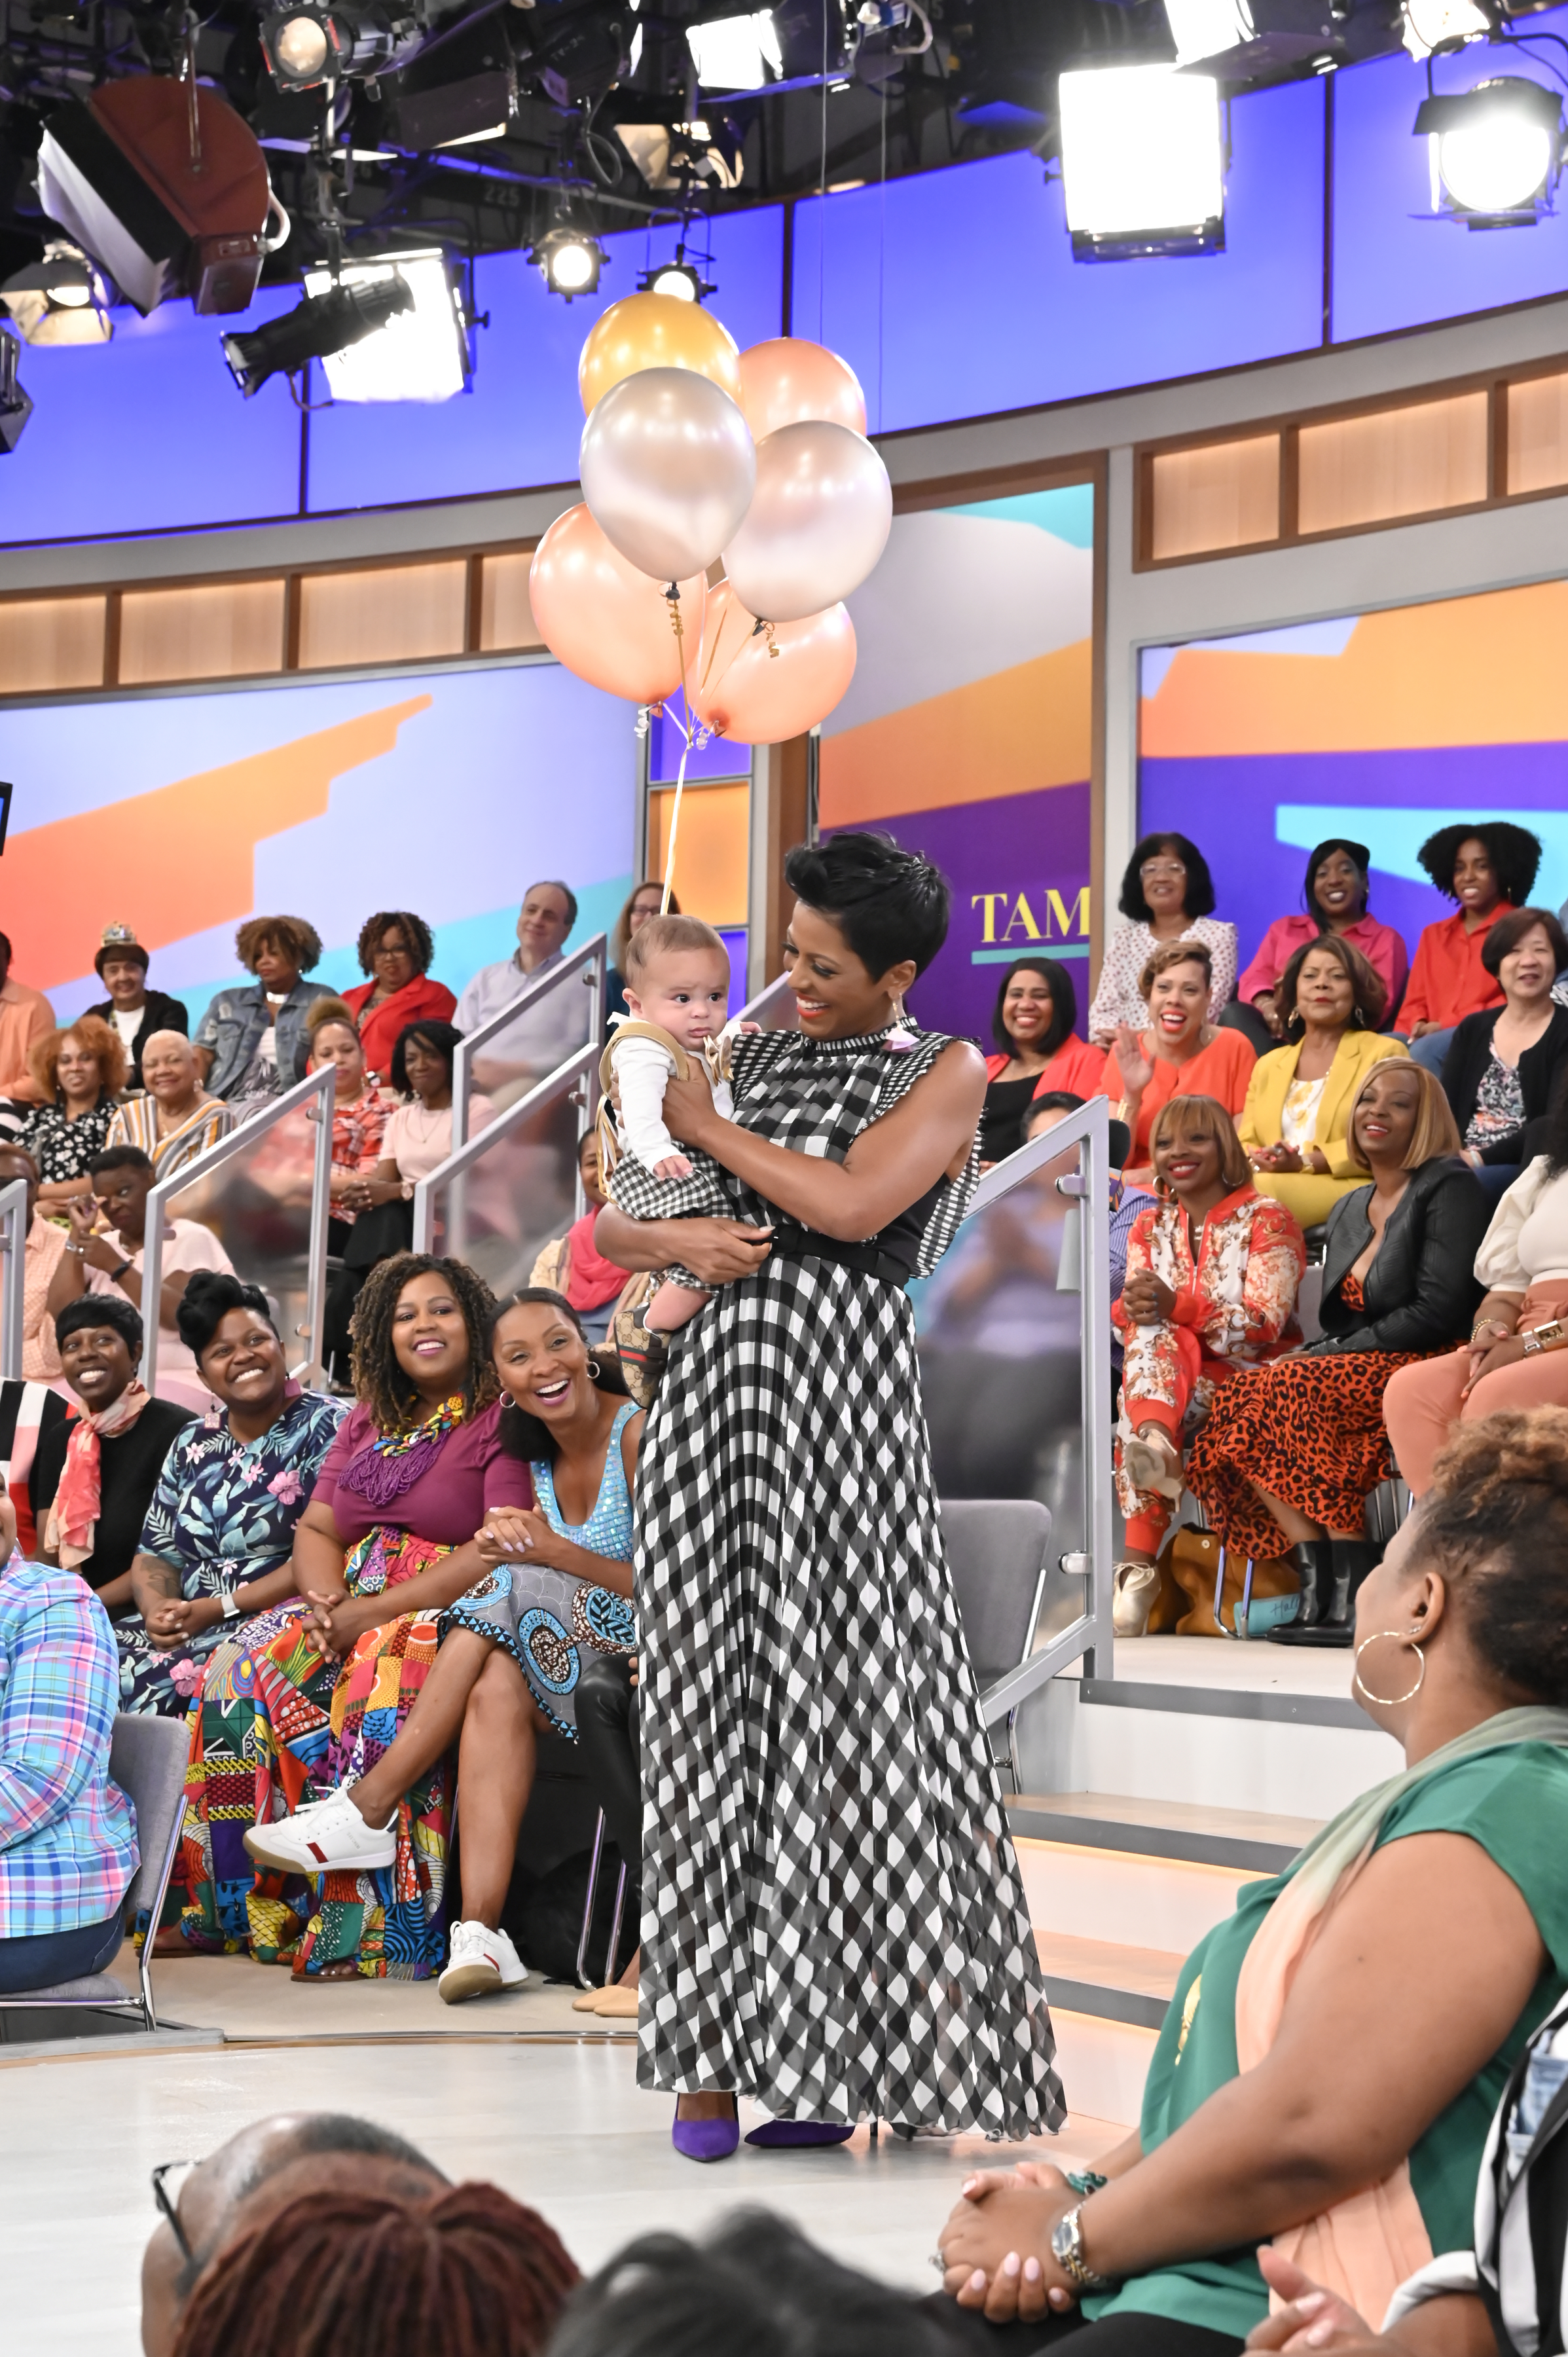 In Case You Missed It: Kenya Moore, Gretchen Rossi Plus Baby Moses Stop By The Tamron Hall Show